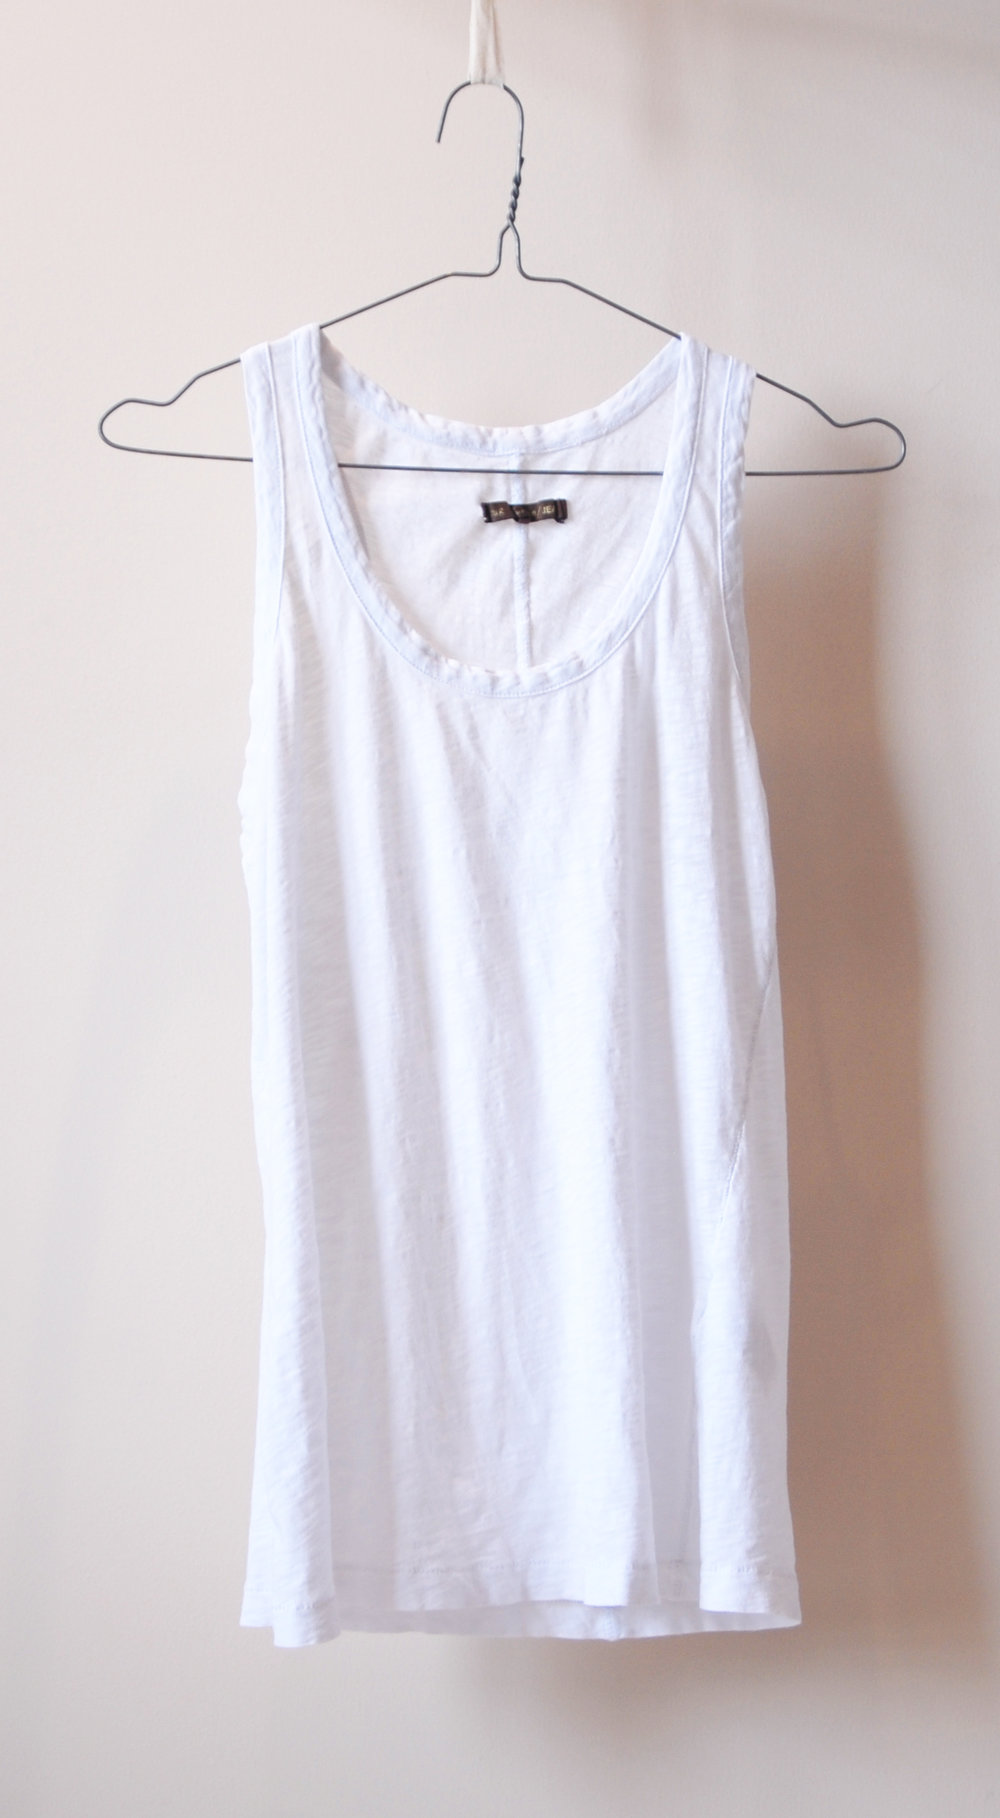 Rag and Bone Tank.jpg